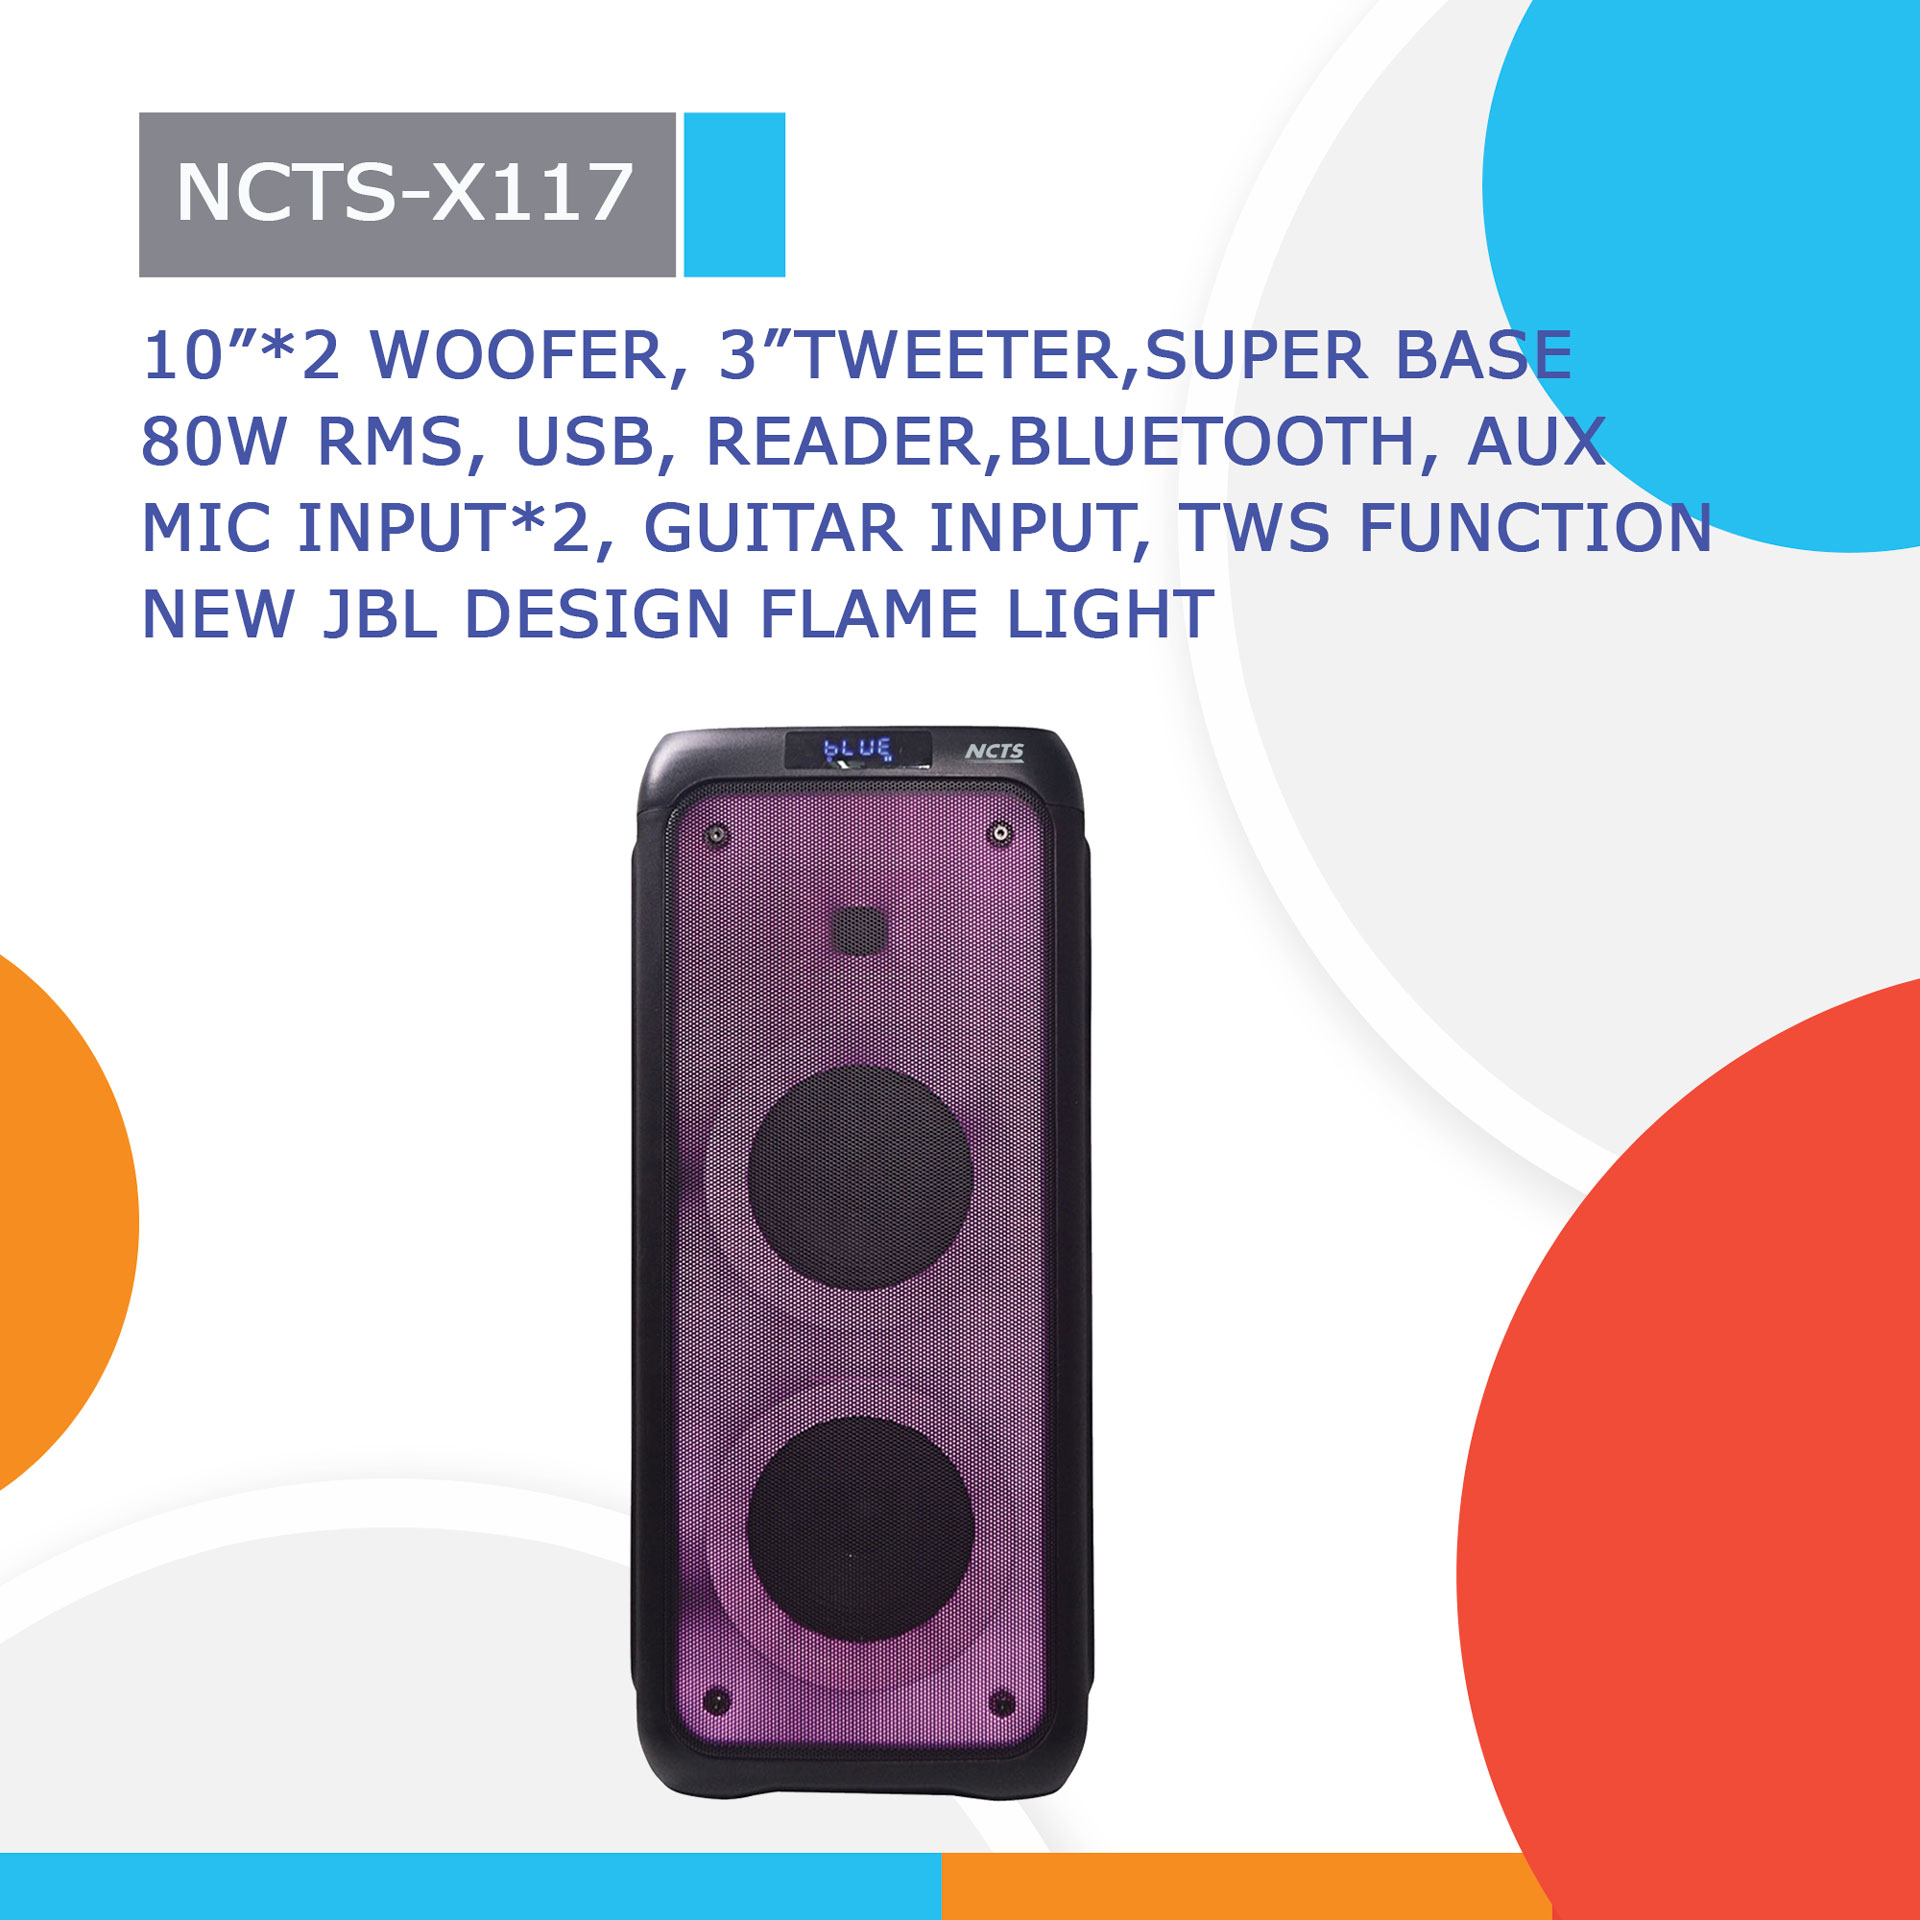 NCTS-X117